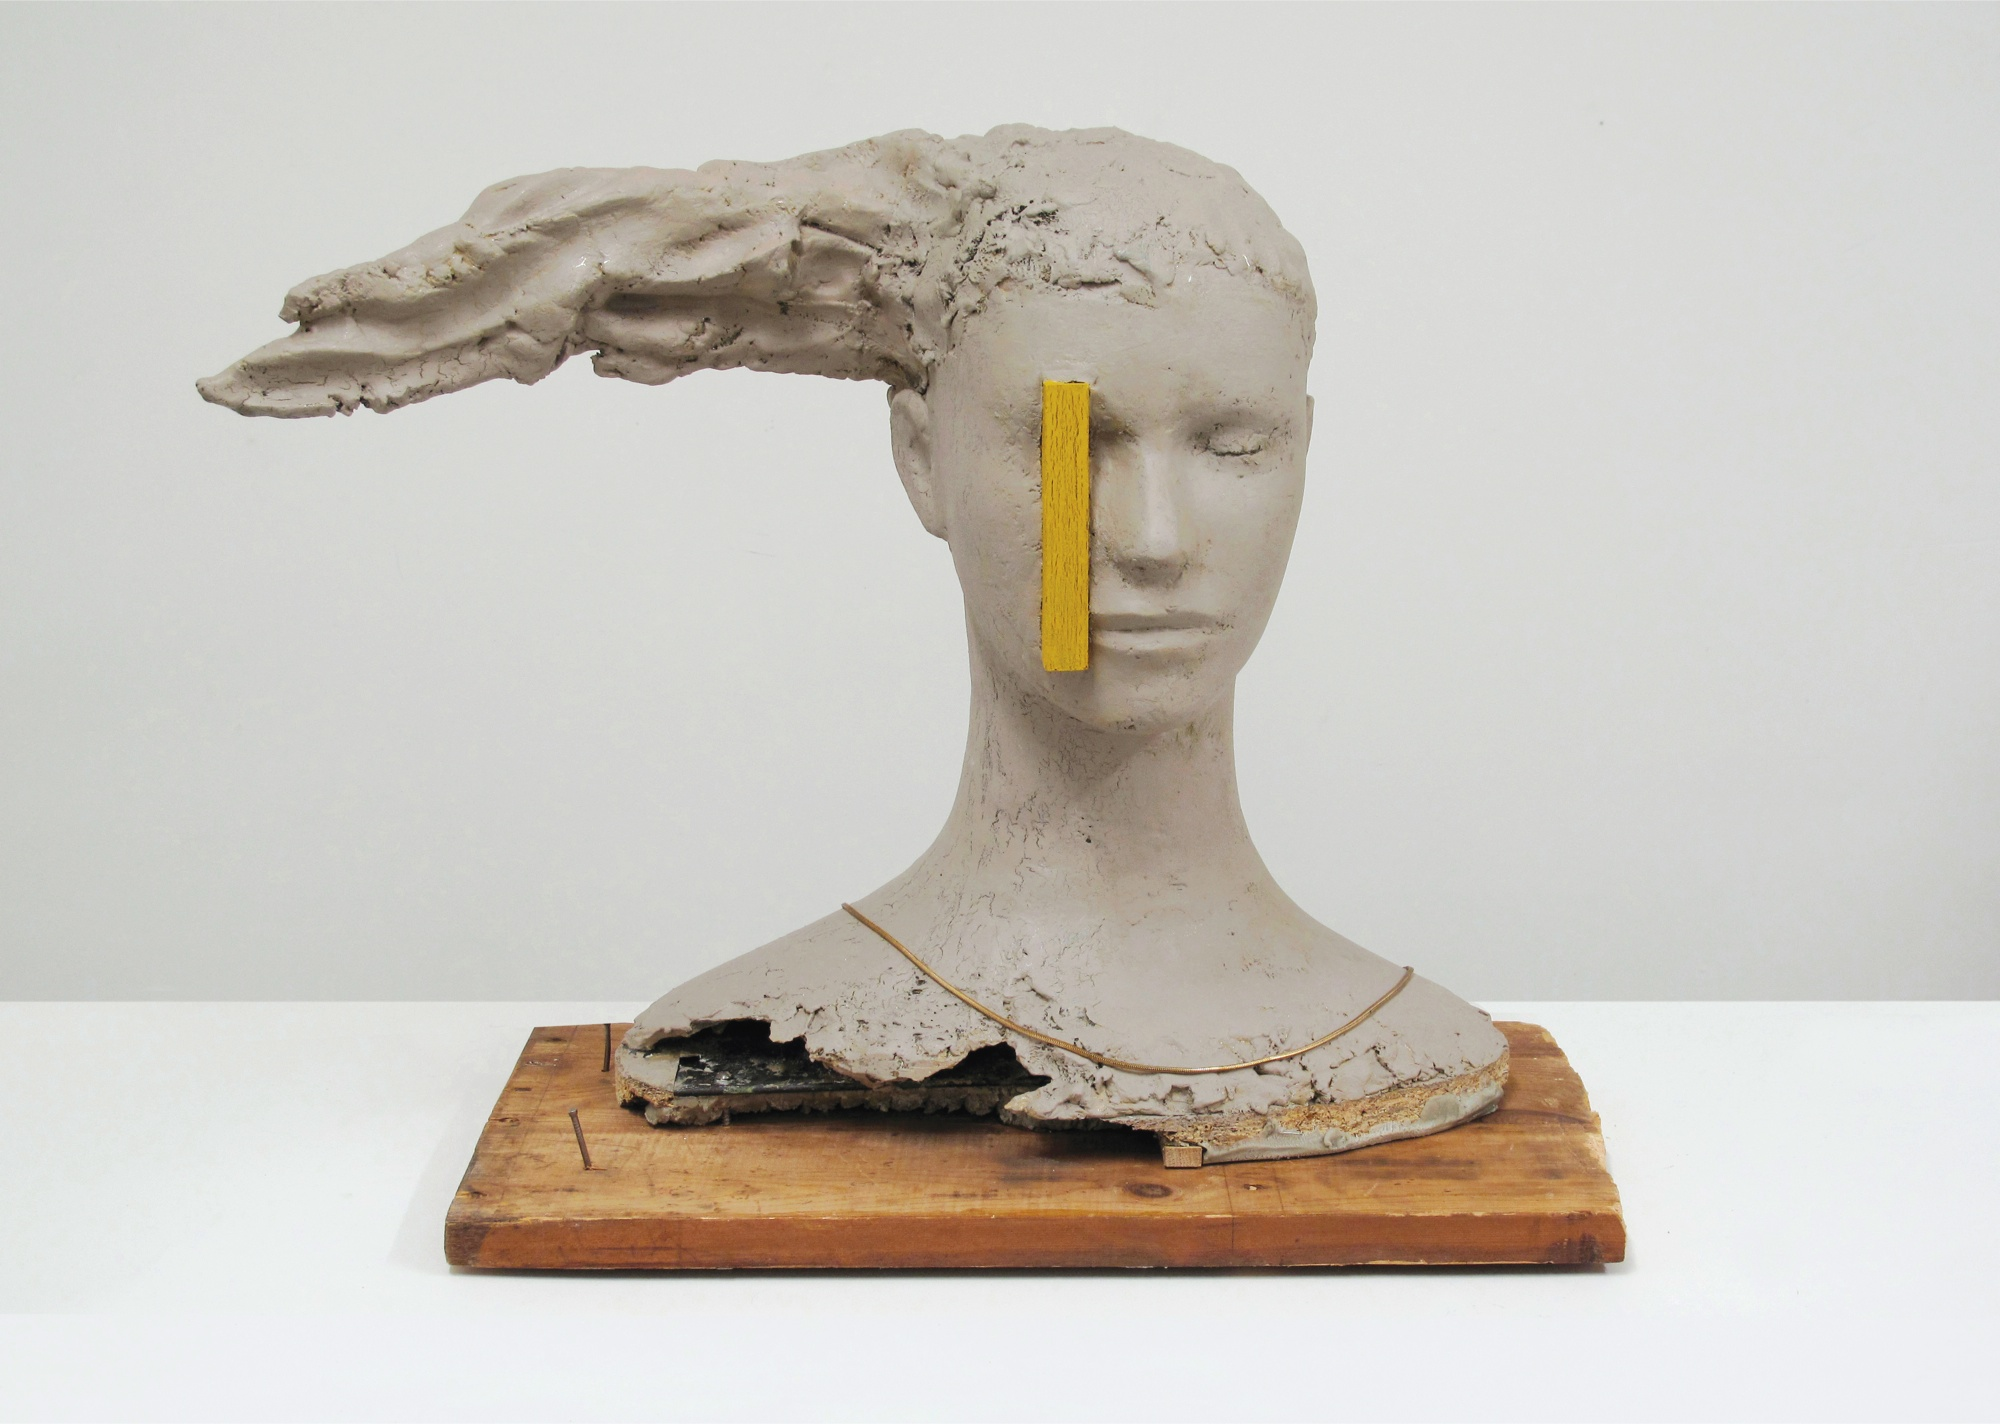 Mark Manders, Composition with Yellow Vertical, 2010, legno, resina epossidica dipinta, ferro, collana, cm 